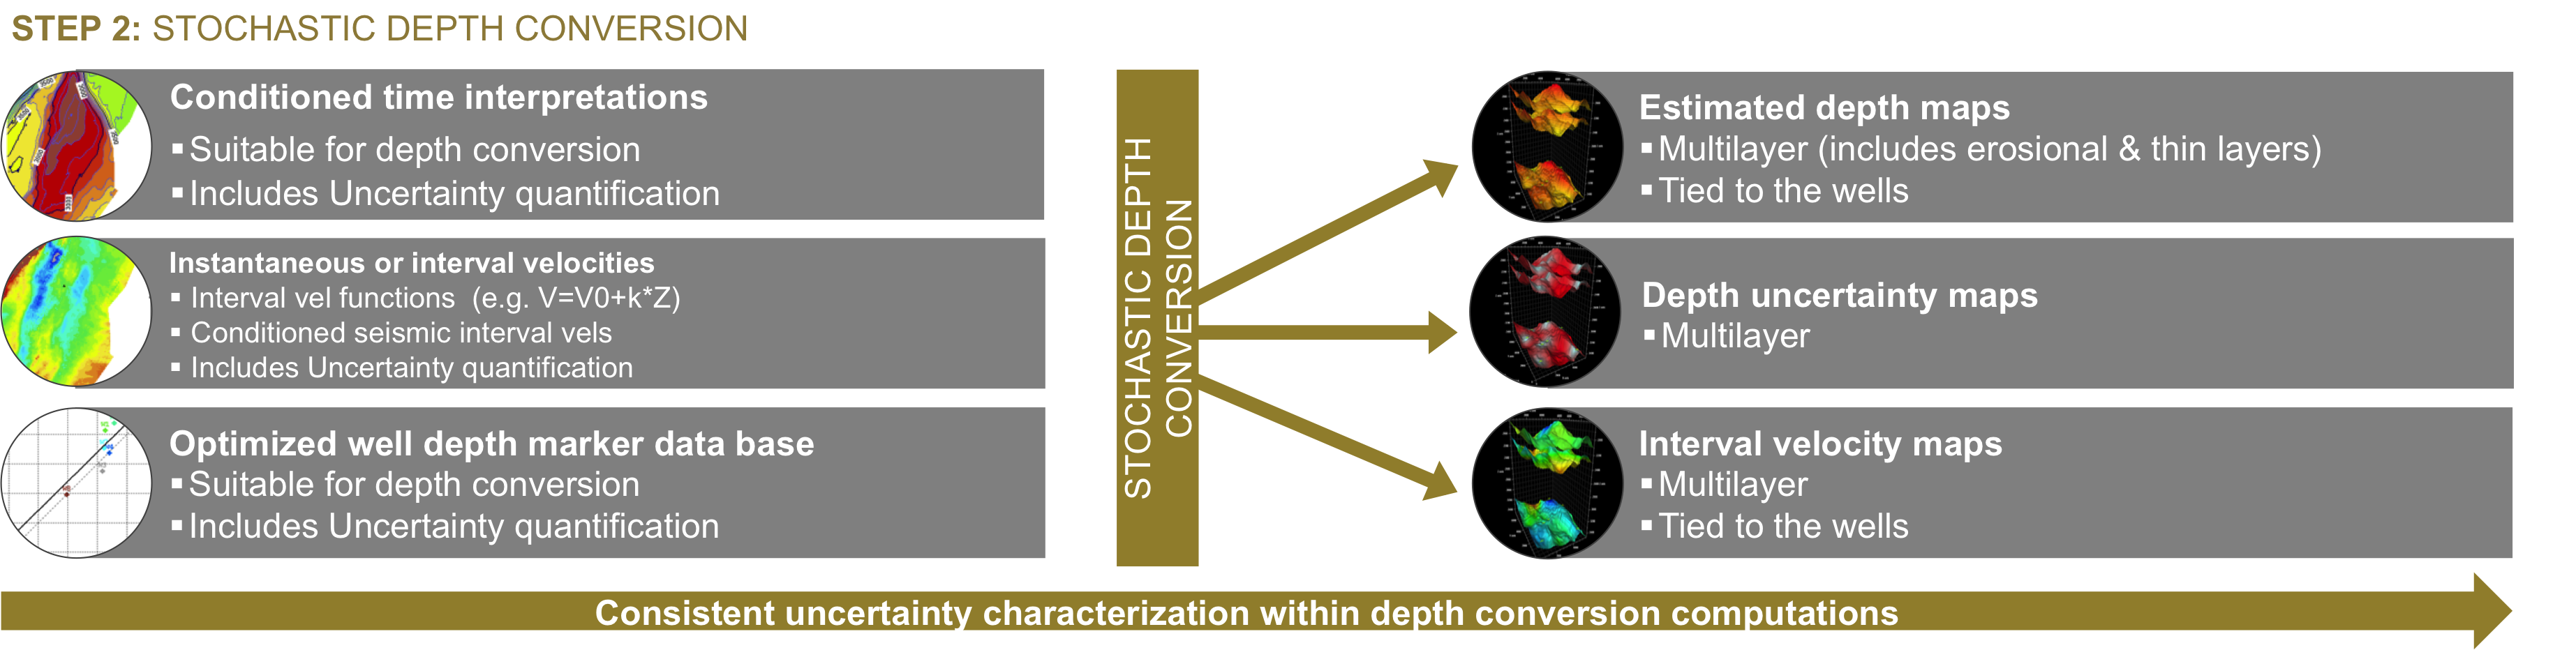 Step 2: Stochastic Depth Conversion